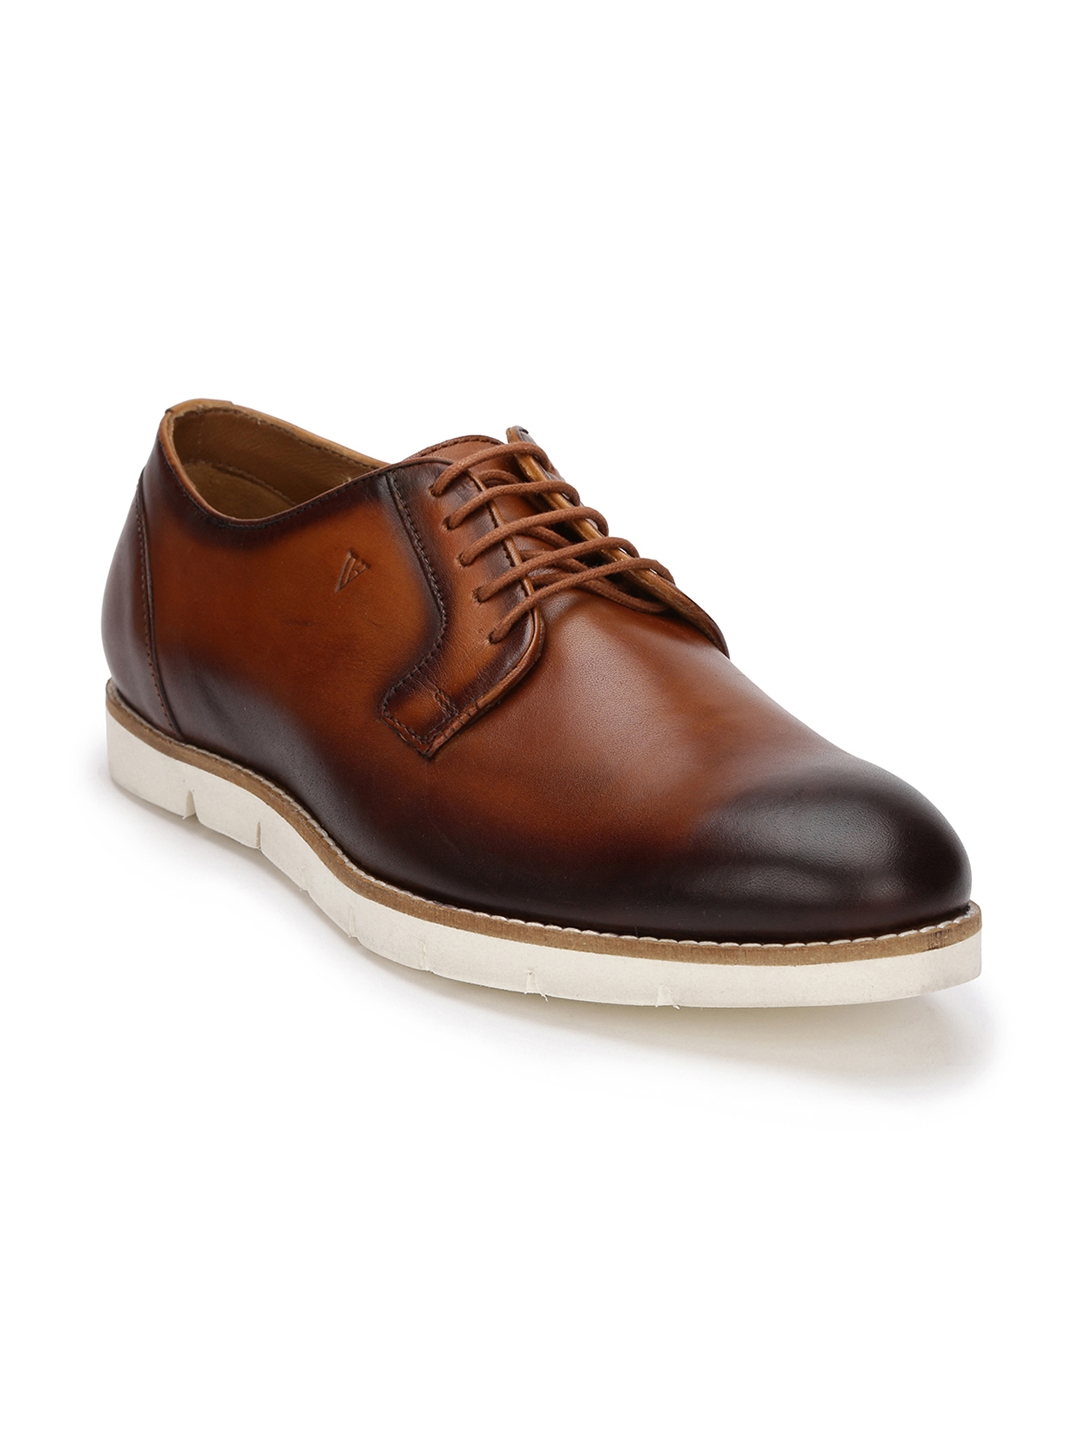 c408ef6511 Buy Van Heusen Men Tan Brown Leather Derbys - Formal Shoes for Men ...